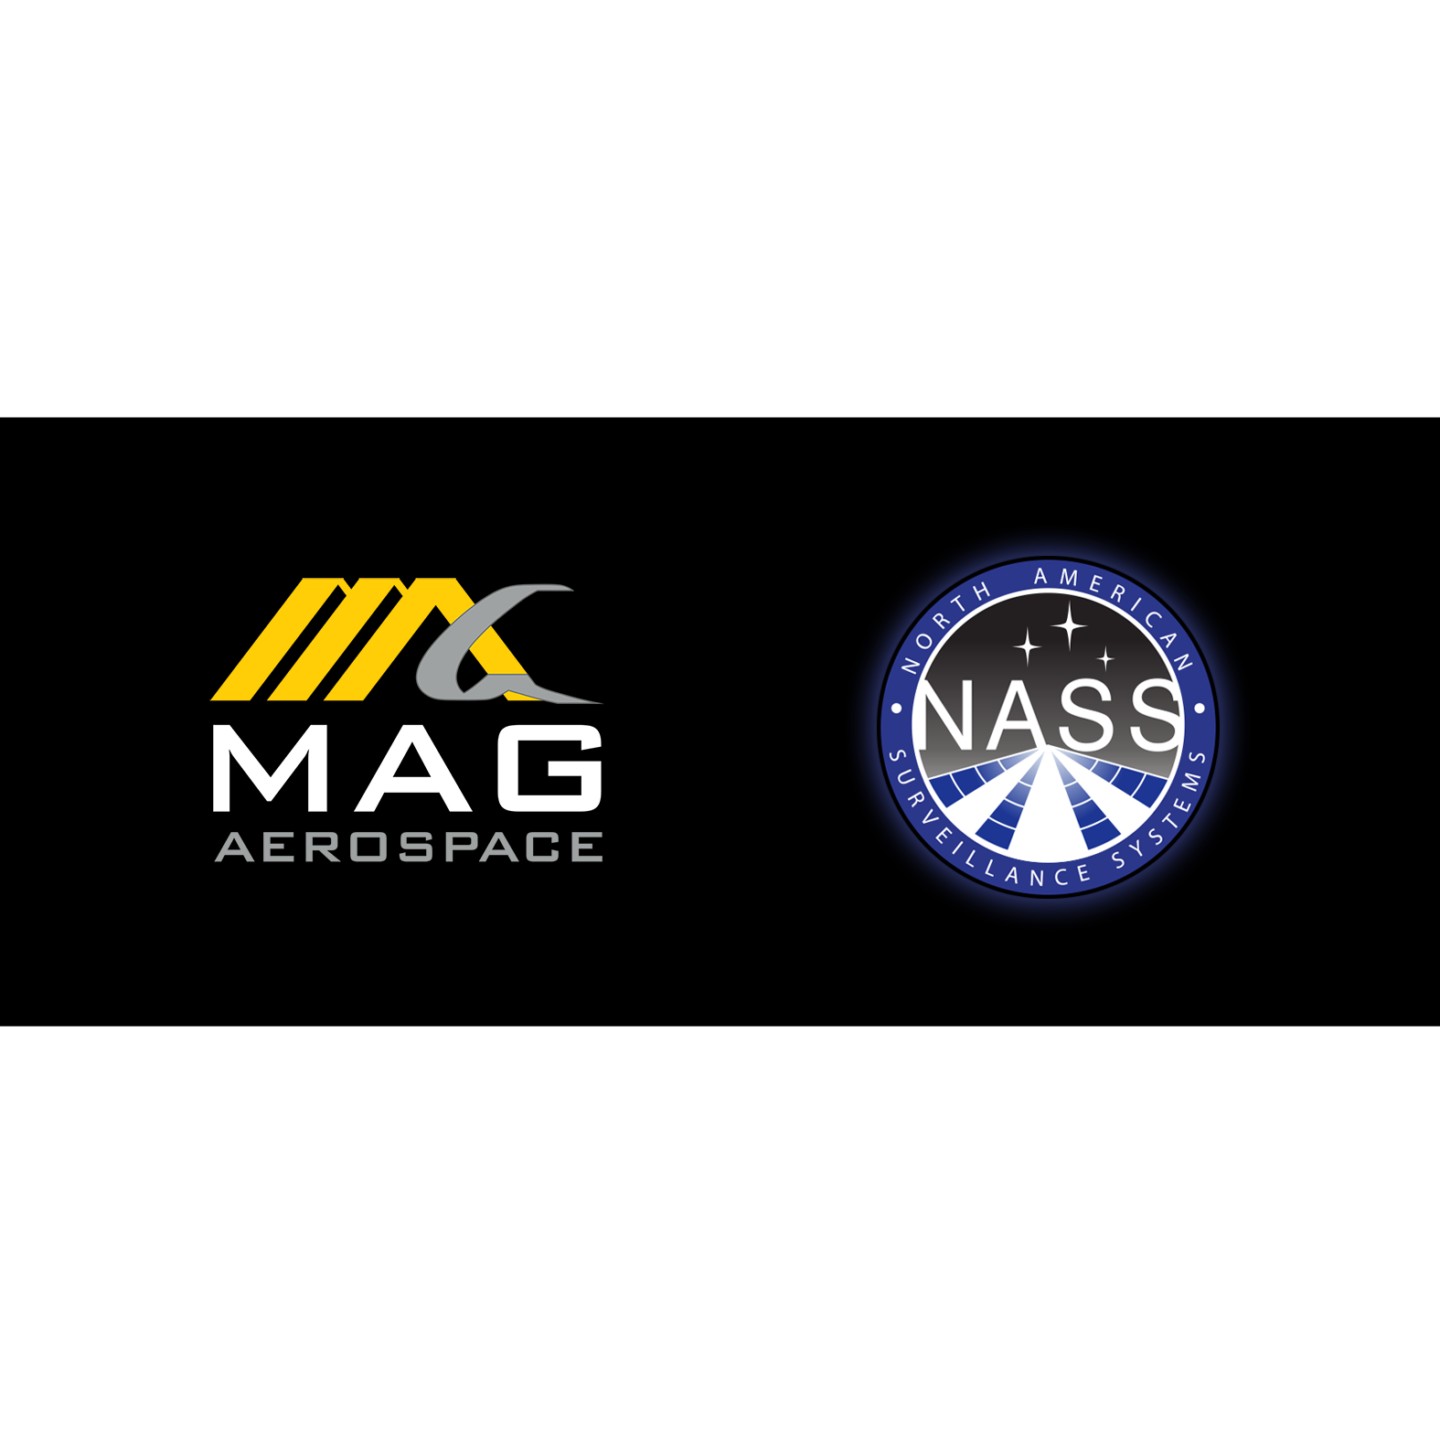 MAG Aerospace and NASS - North American Surveillance Systems Logos